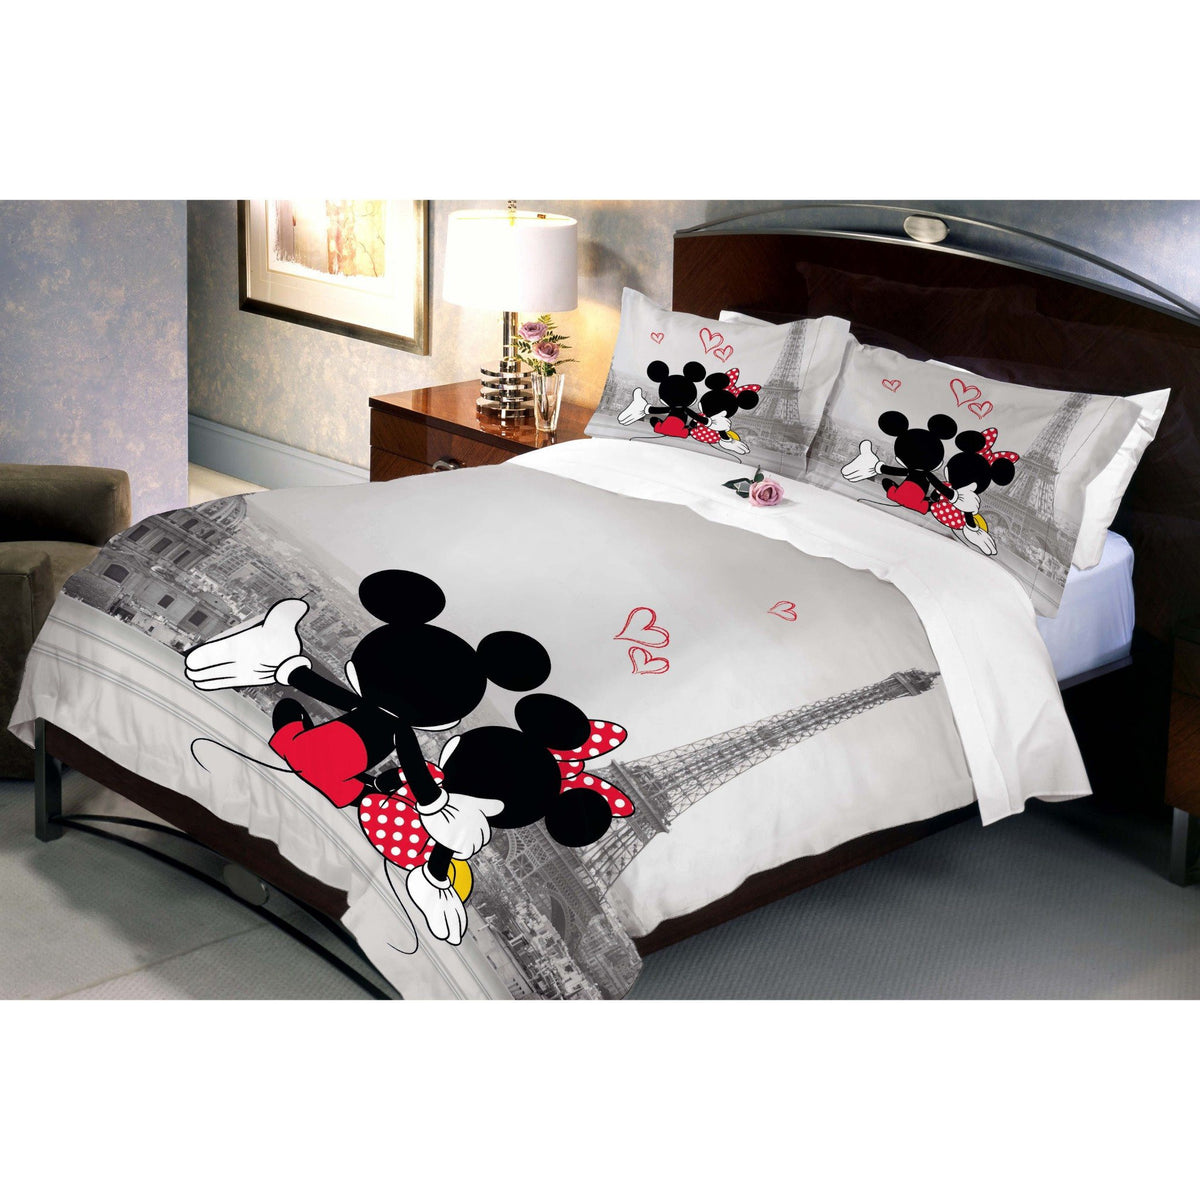 Disney Mickey Minnie Bed Sheet With Pillow Covers Uber Urban Uber Urban